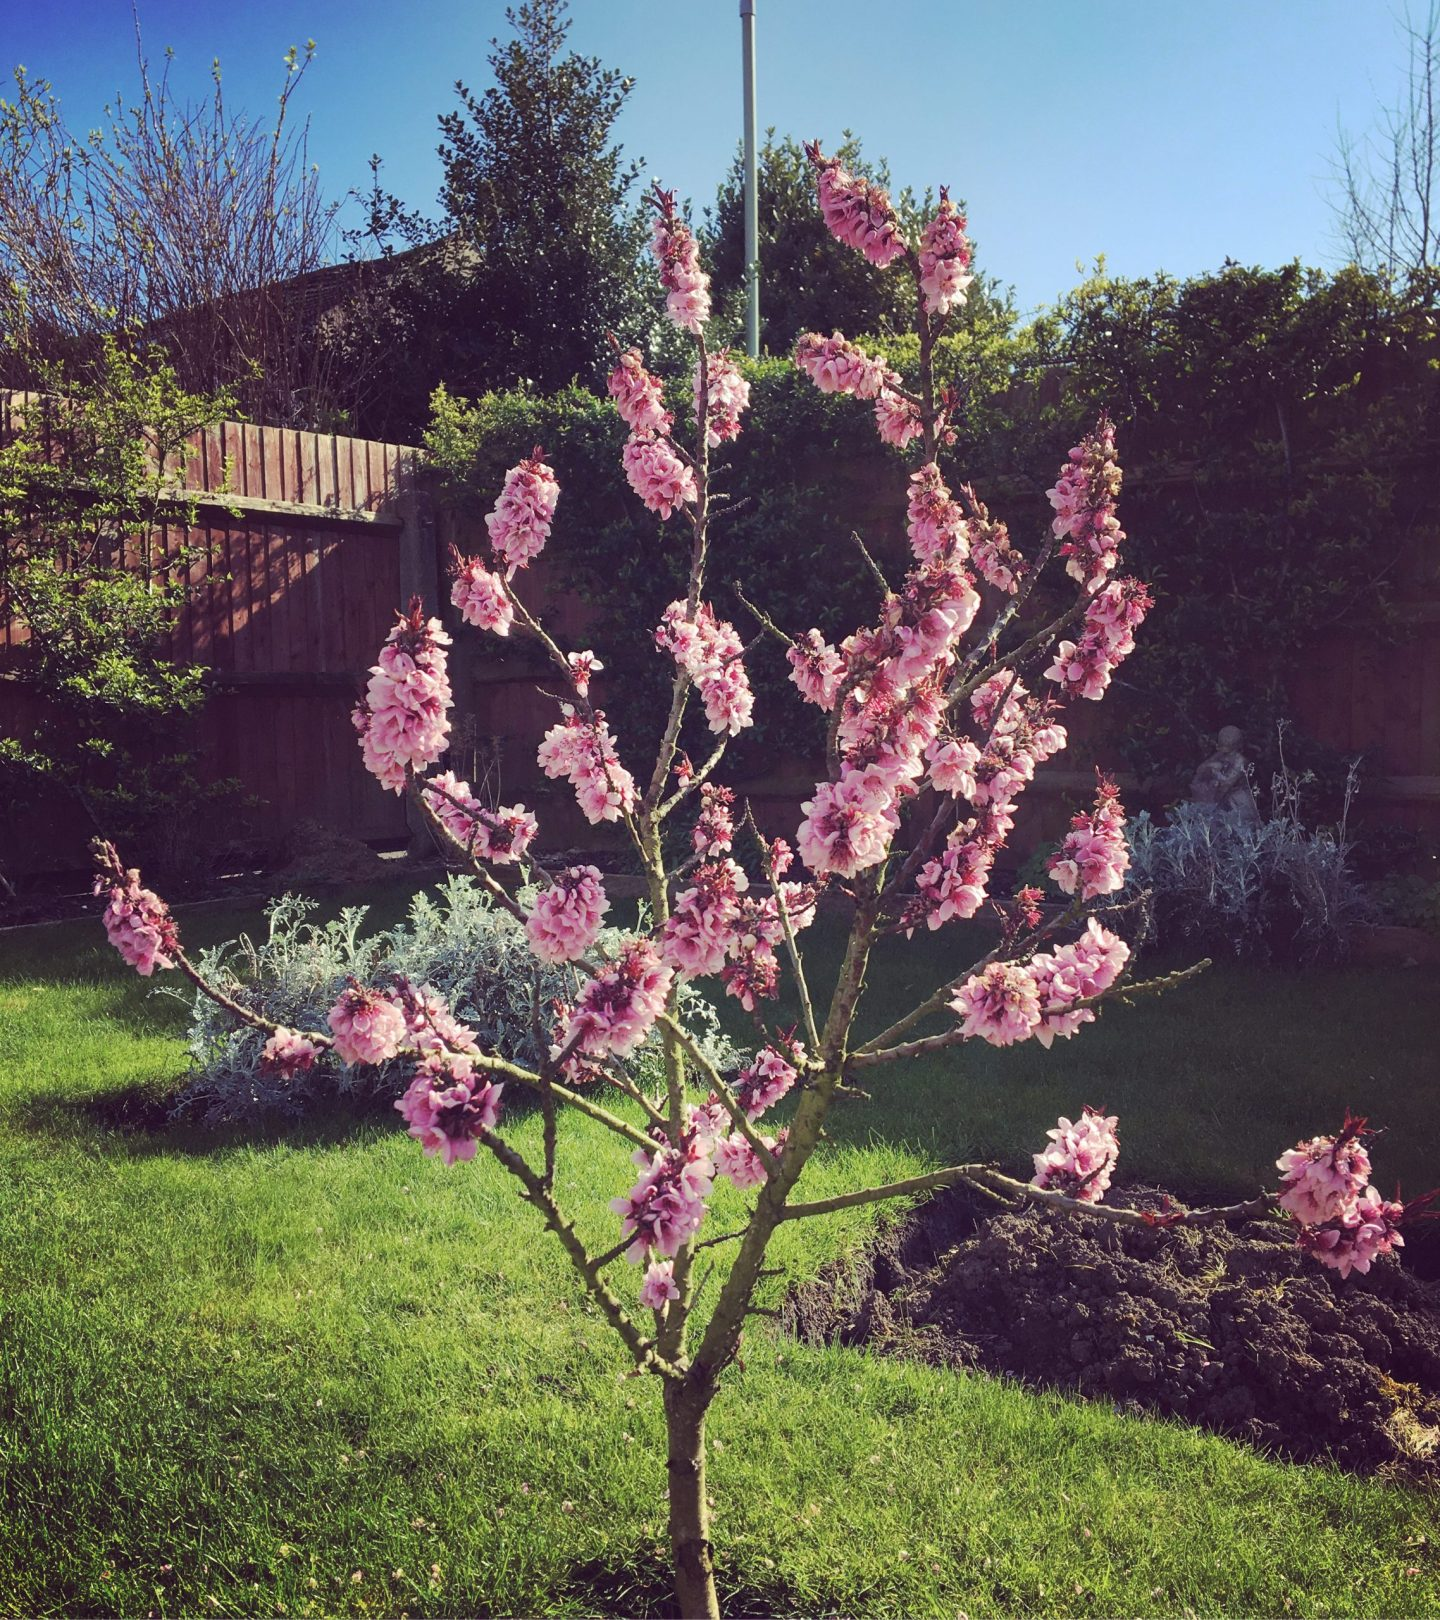 A photo fo a pink blossom flower in the garden.